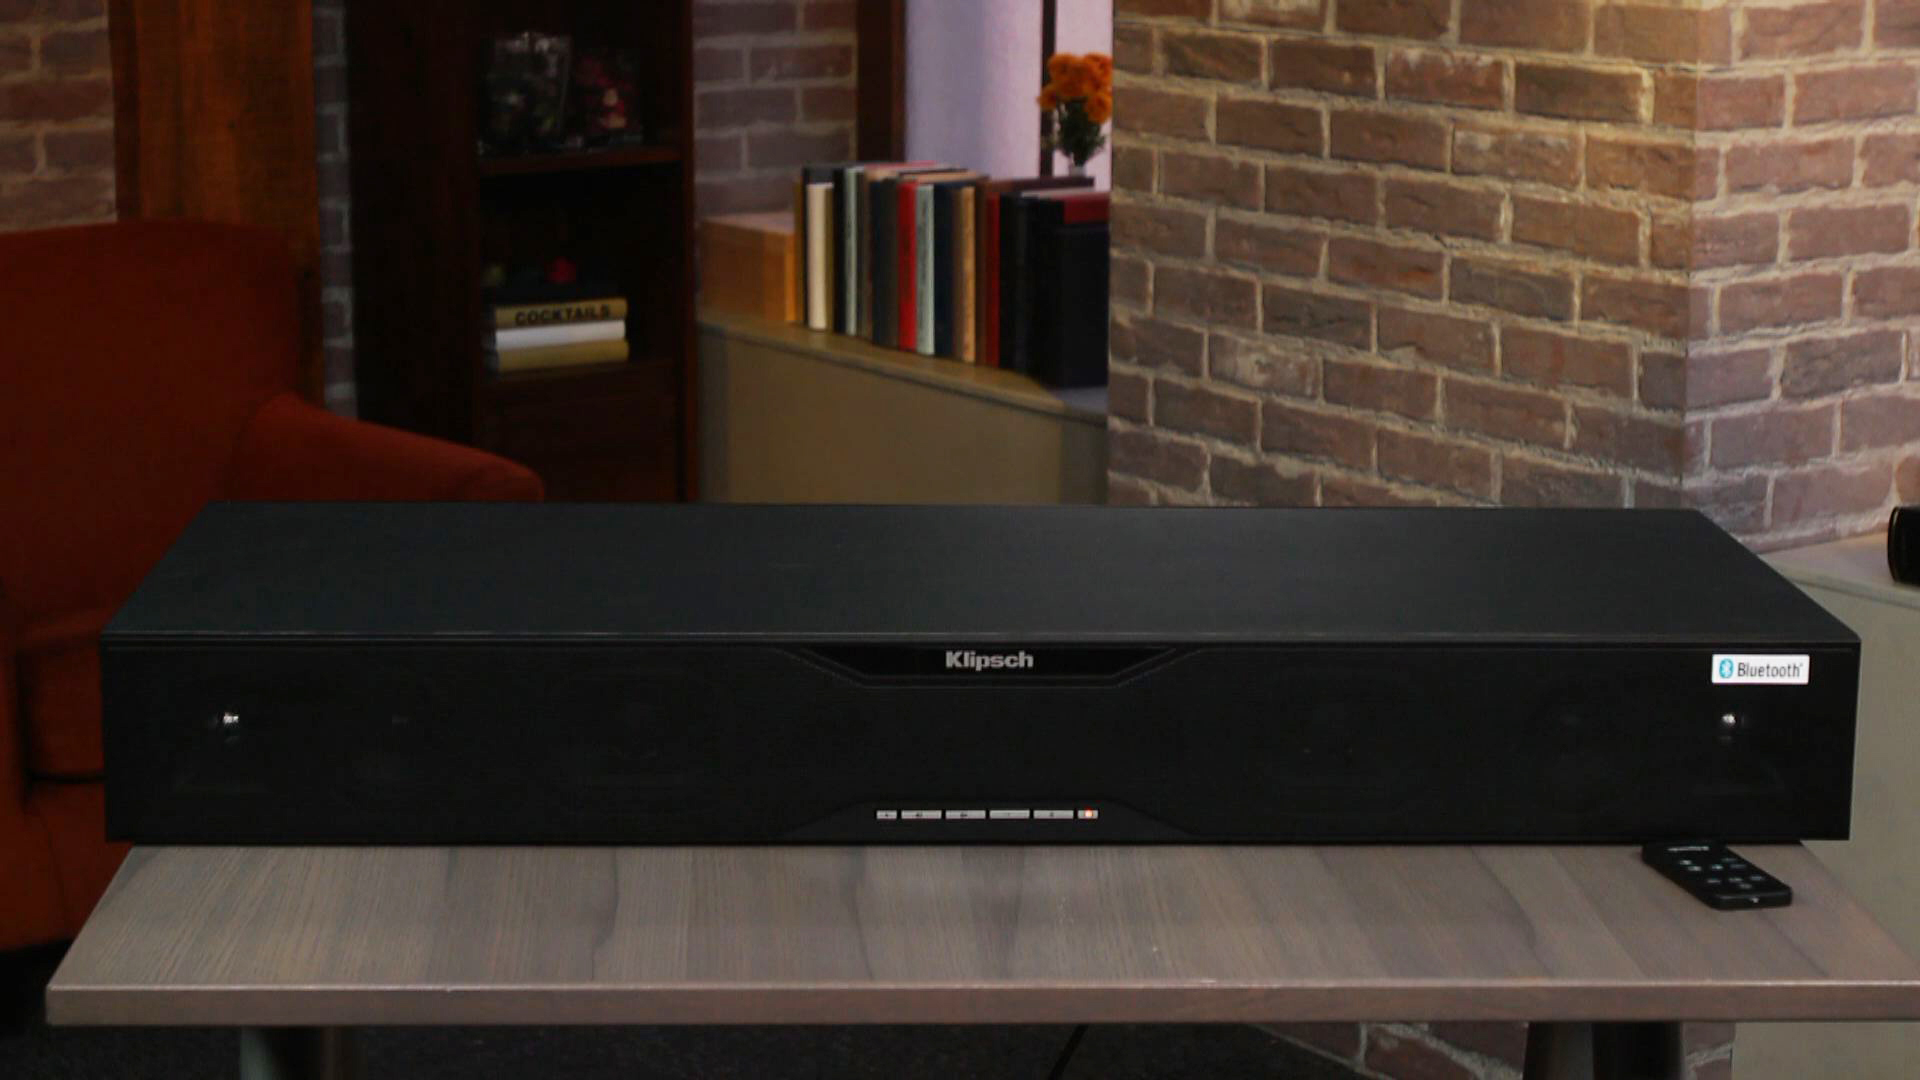 Video: Klipsch's SB 120 is natural sounding but boxy